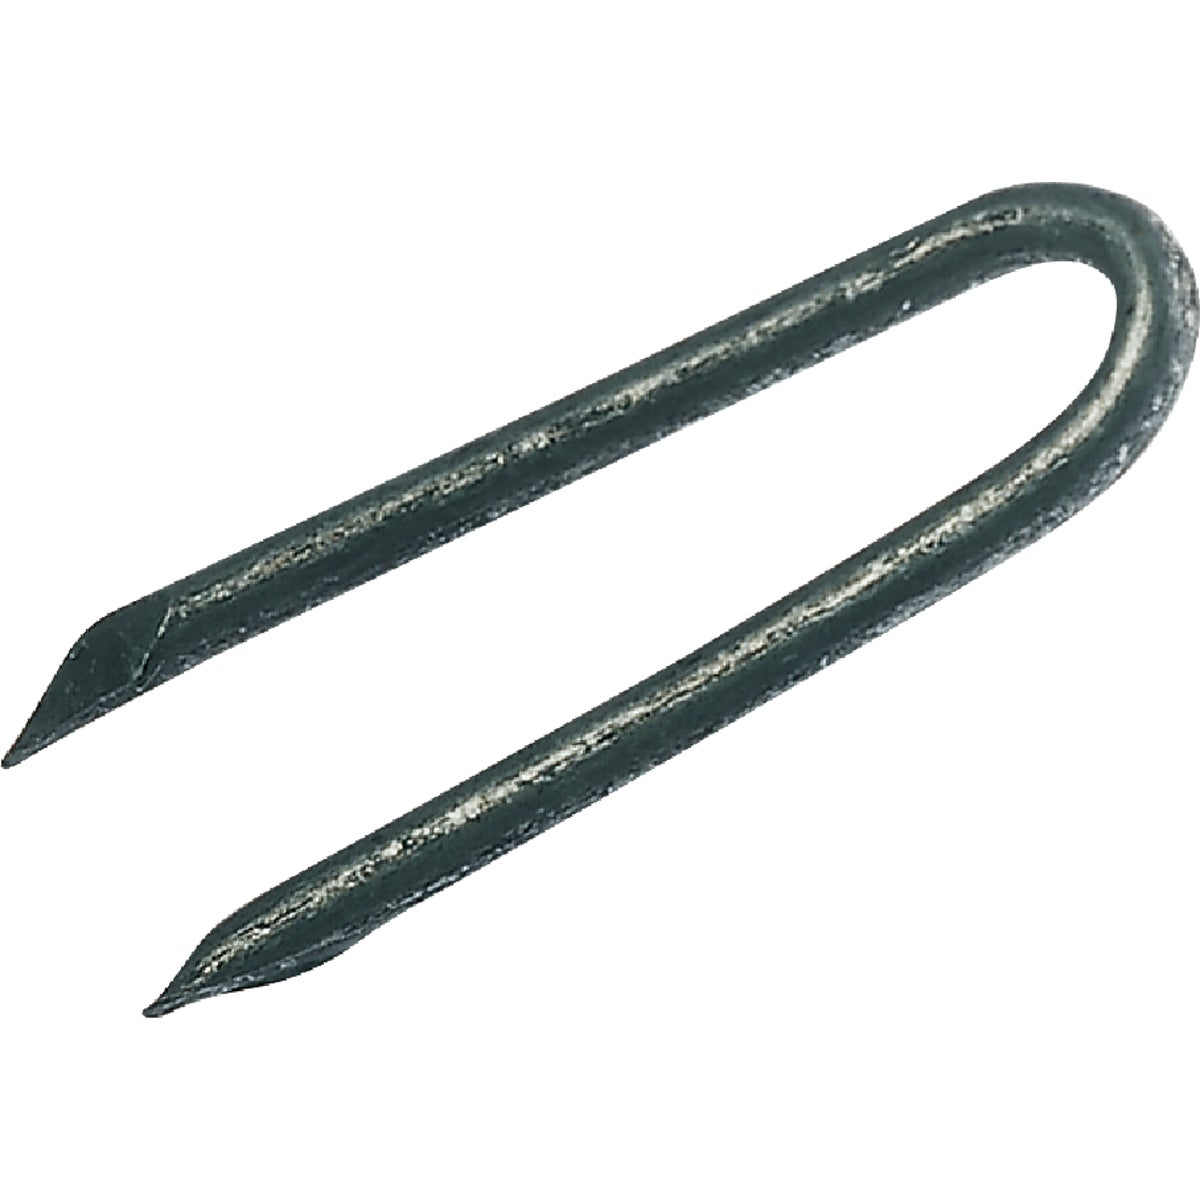 "5LB HDG 1"" STAPLE - 721071 by Primesource"